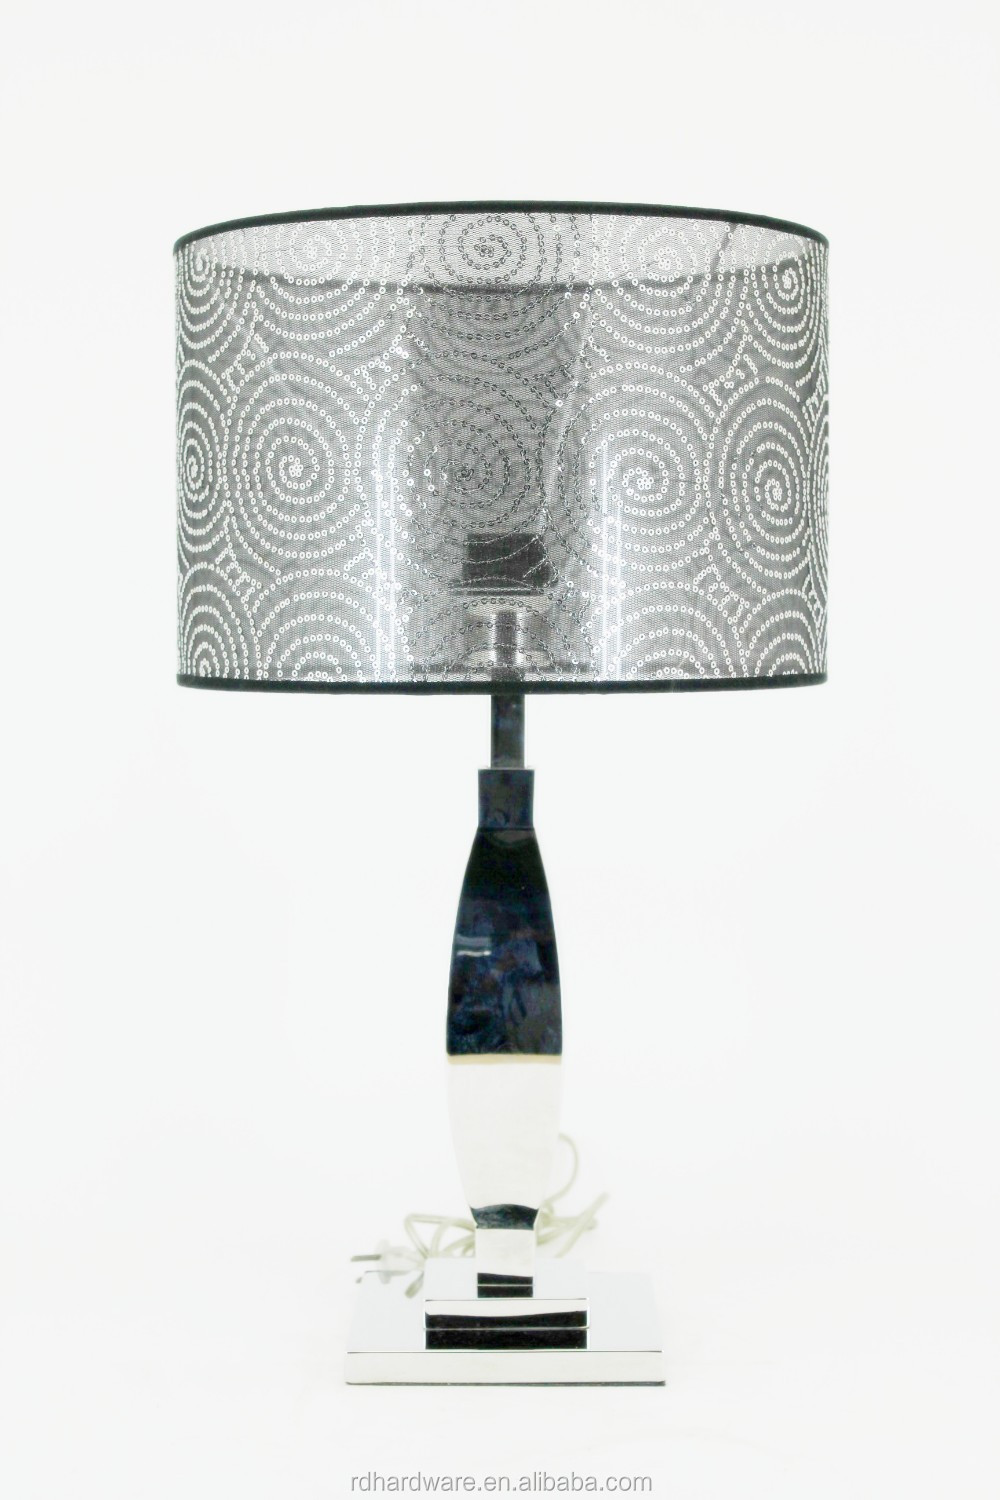 New Table Lamp Design Decorative Items For Living Room